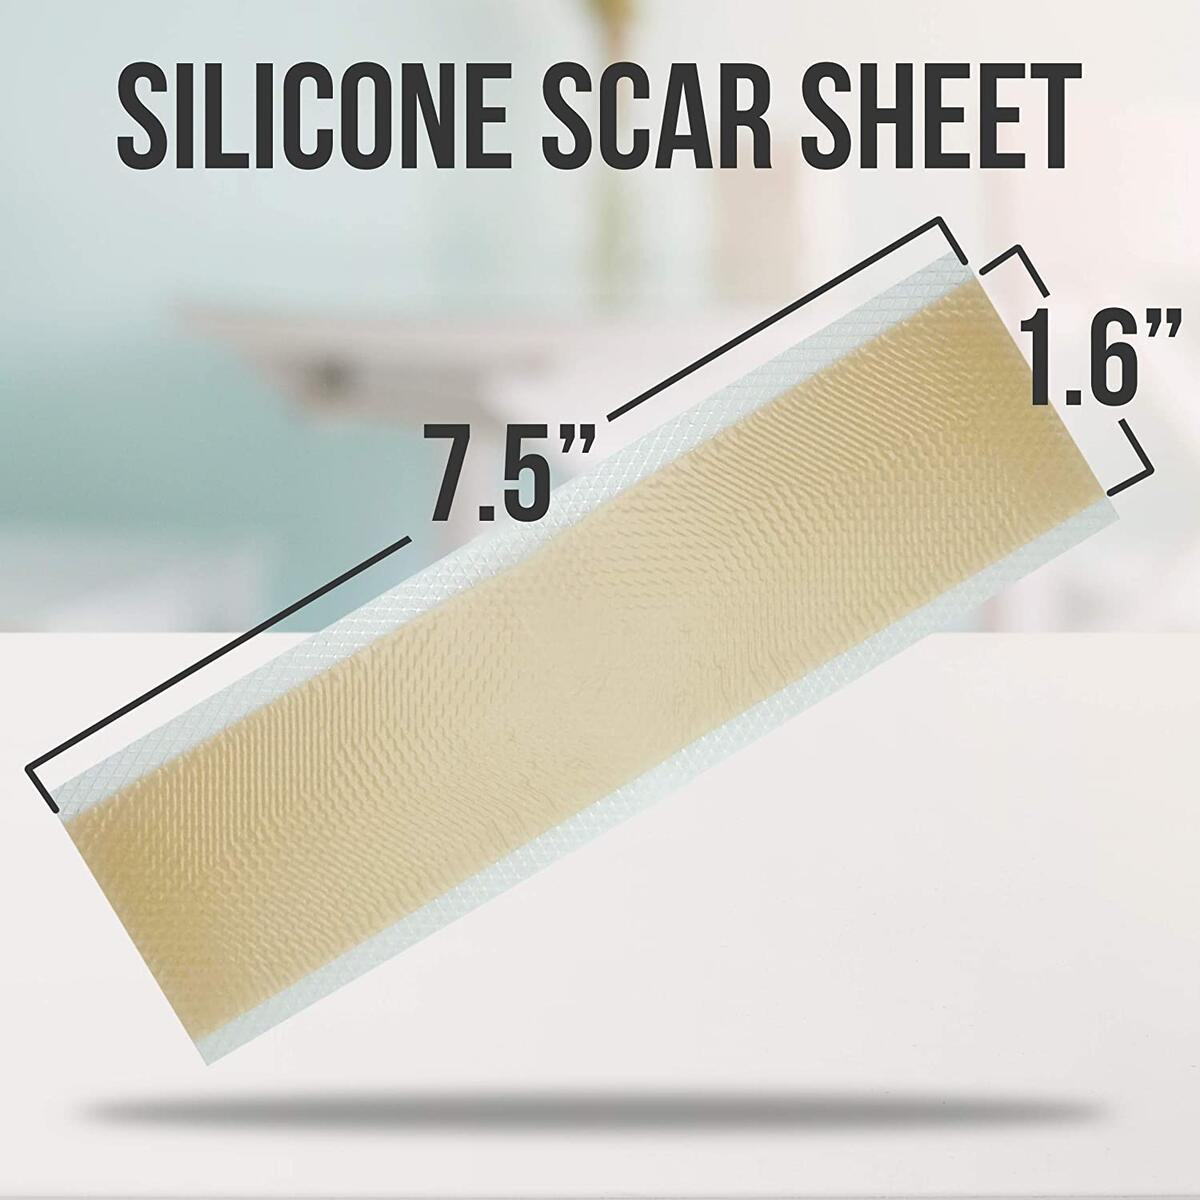 "[Box of 15] Silicone Scar Sheets, Medical Silicone Scar Removal Sheets (7.5""x1.6"") Silicone Sheets for Scars, Keloid & Acne, Scar Treatment Sheets for Burns & Surgery Scars, Reusable w/UV Protection"